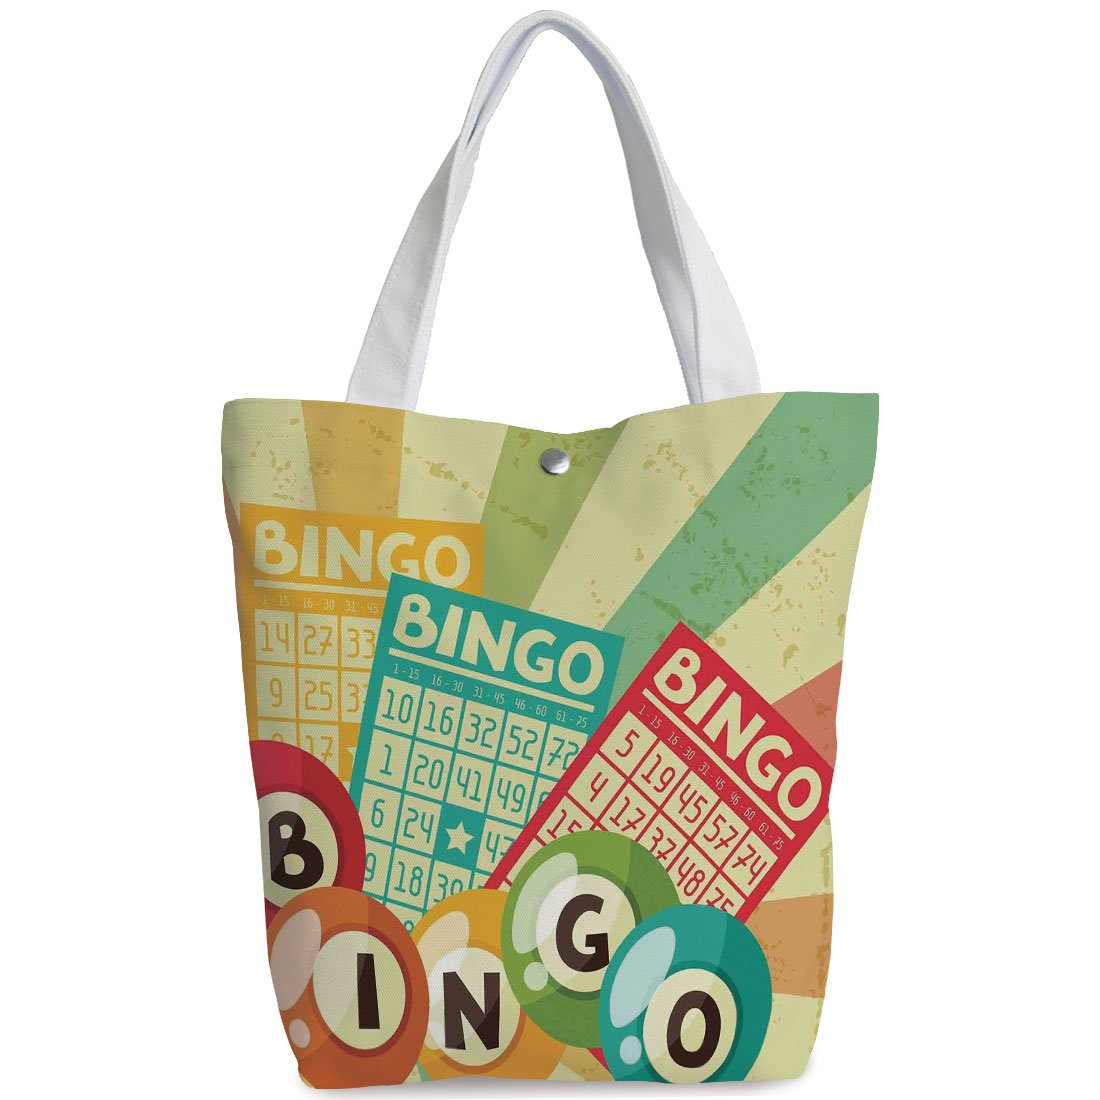 iPrint Canvas Shopping bag,shoulder handbags,Shoulder Bag,Vintage Decor,Bingo Game with Ball and Cards Pop Art Stylized Lottery Hobby Celebration Theme,Multi,Personalized Canvas Tote Bag by iPrint